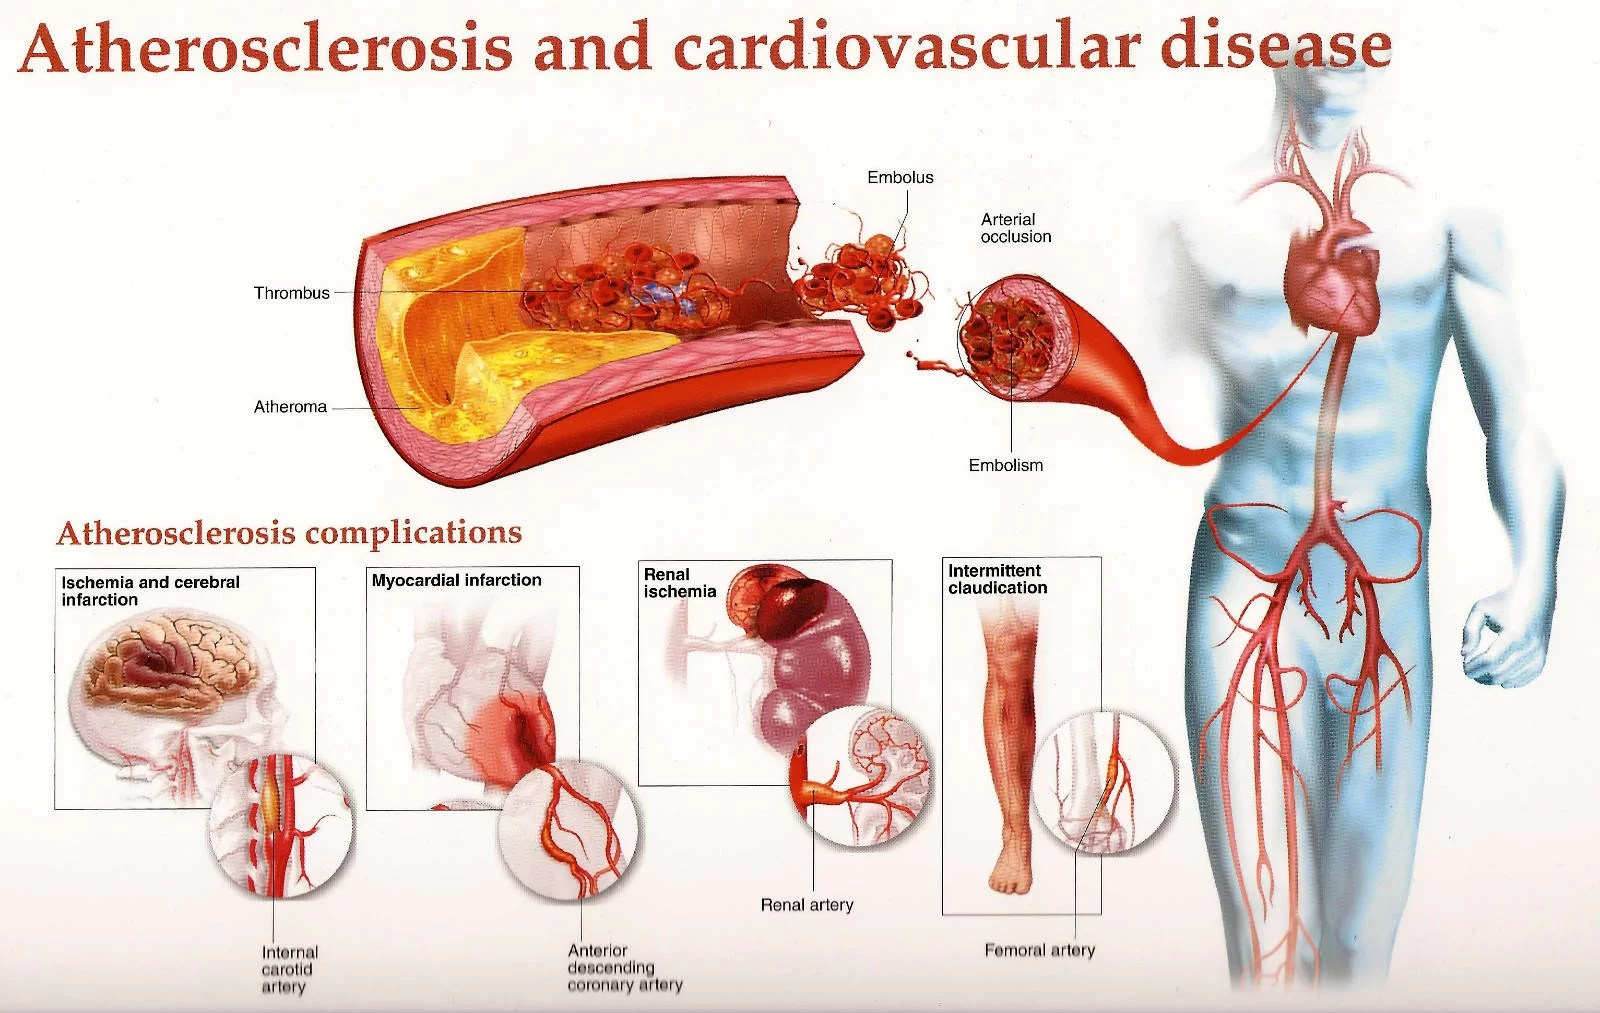 Atherosclerosis - Purify Your Clogged Arteries 2